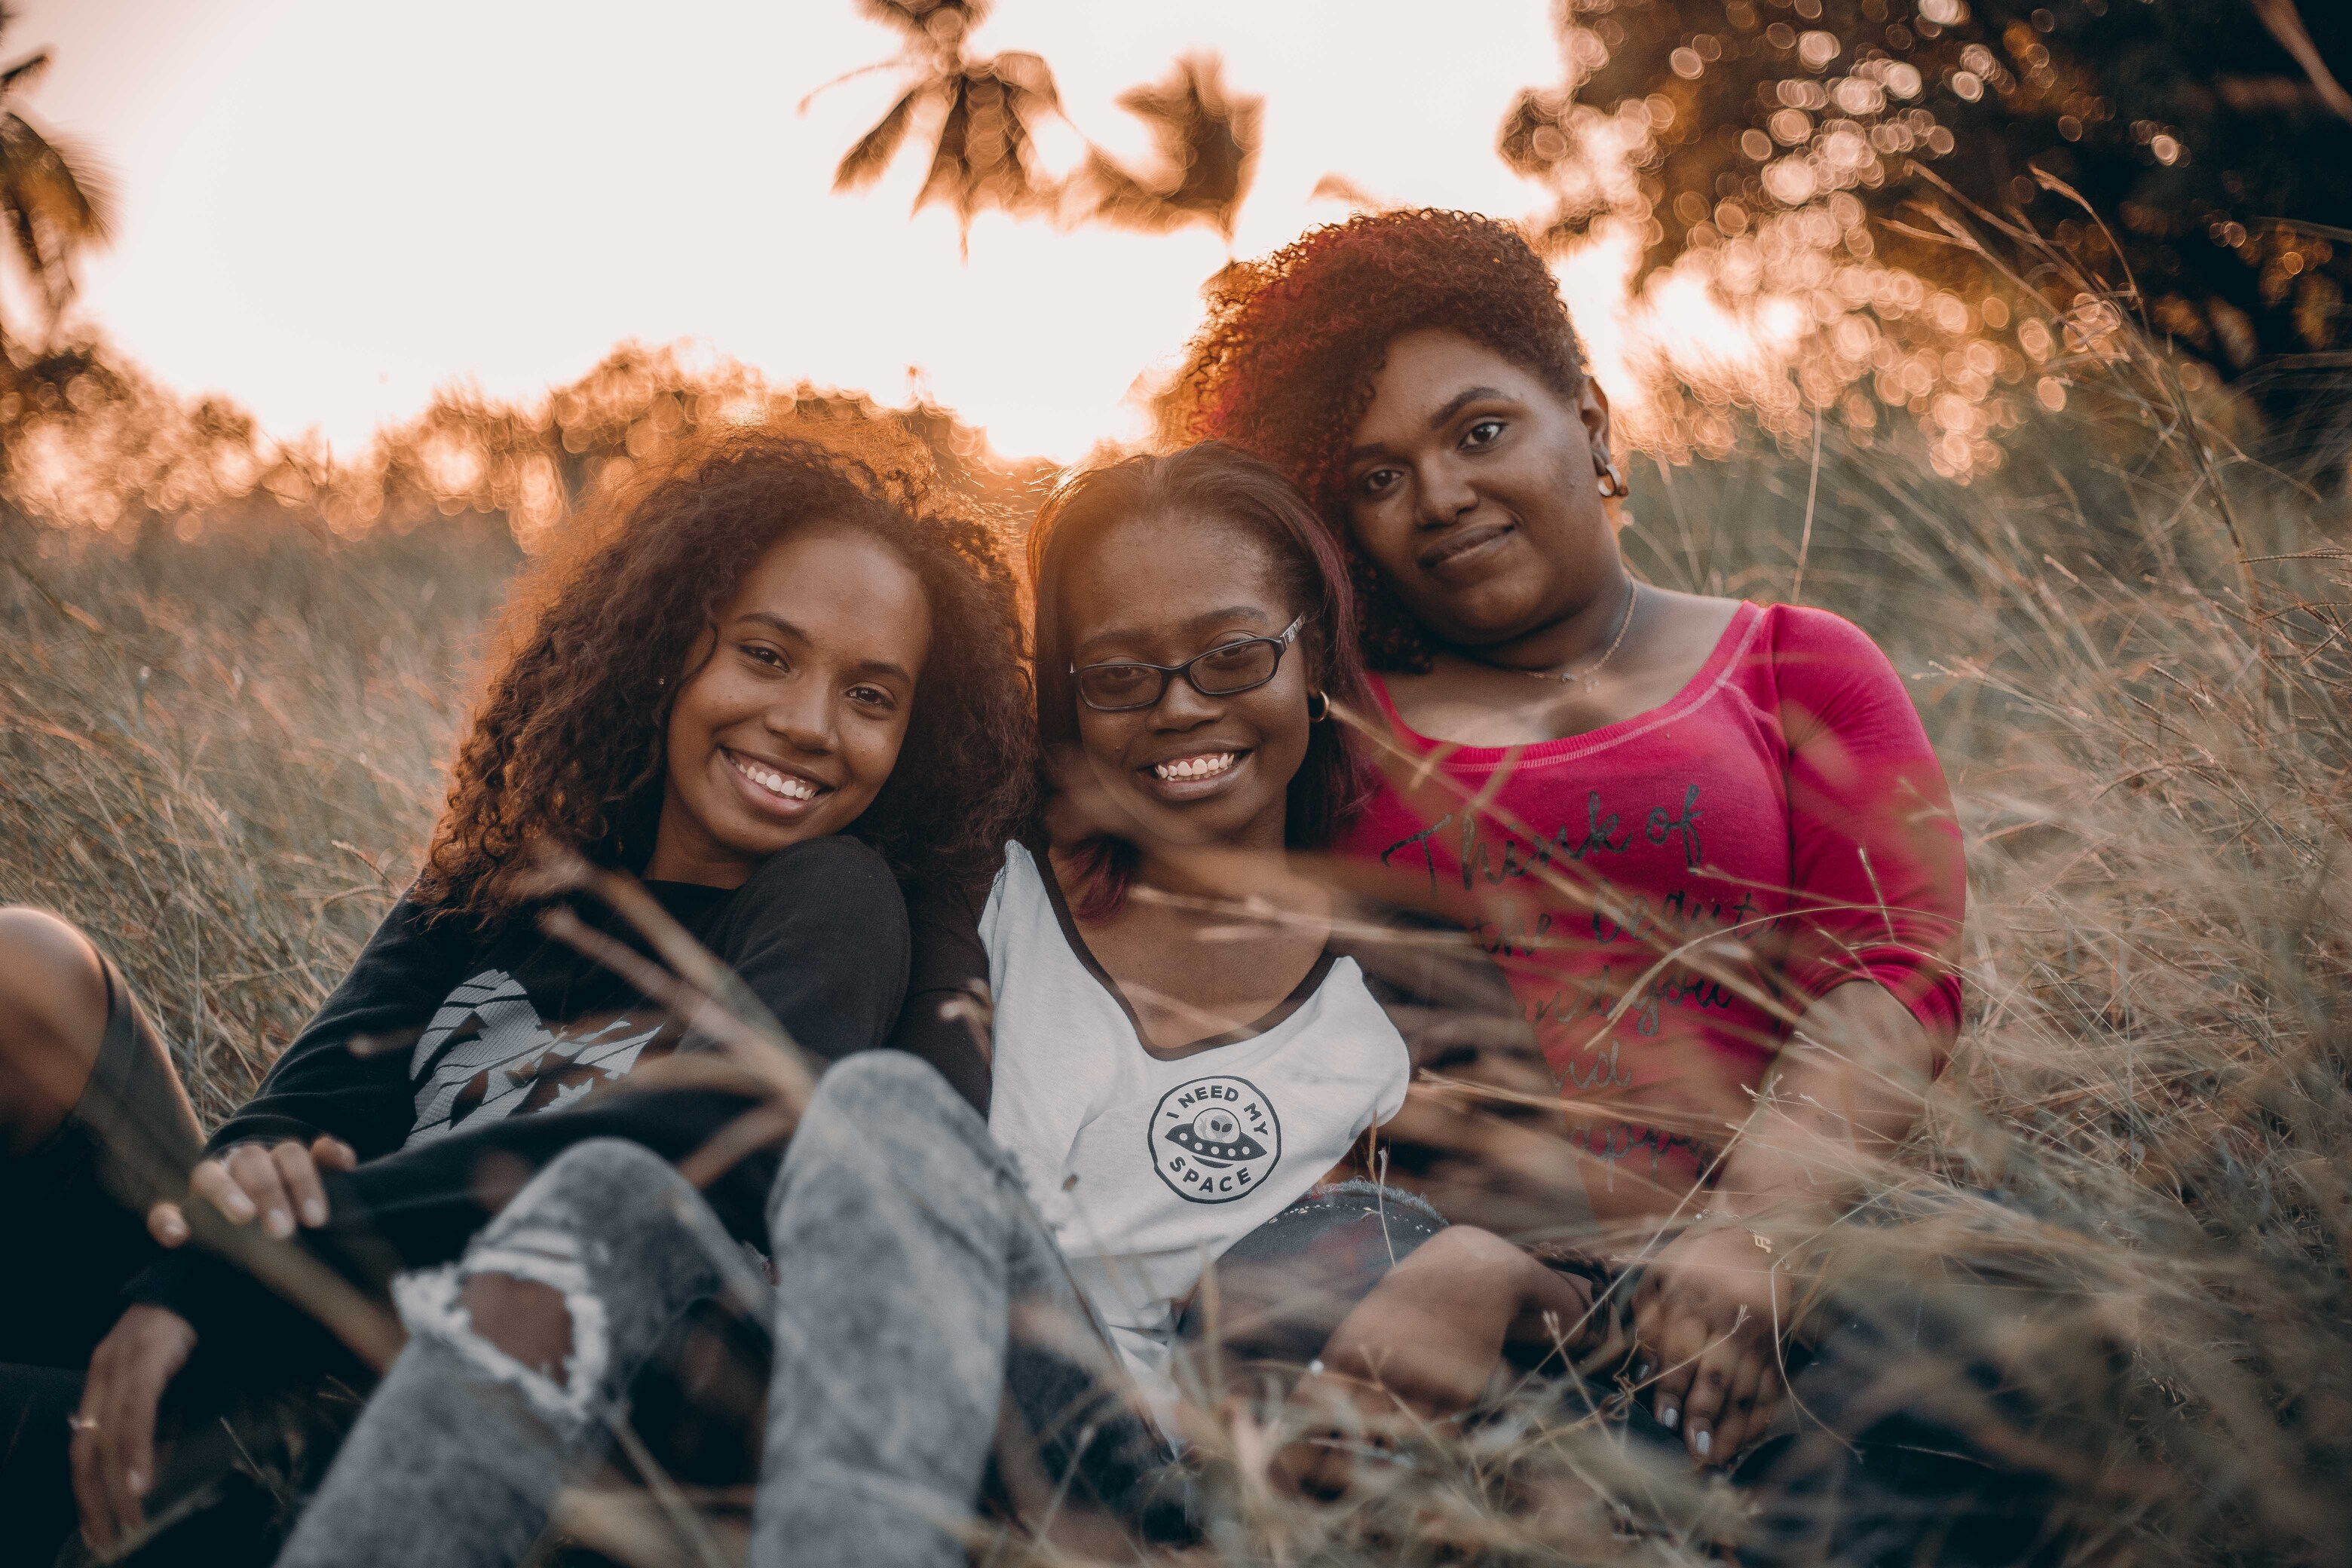 A mother and two daughters sit in a grassy field and smile.